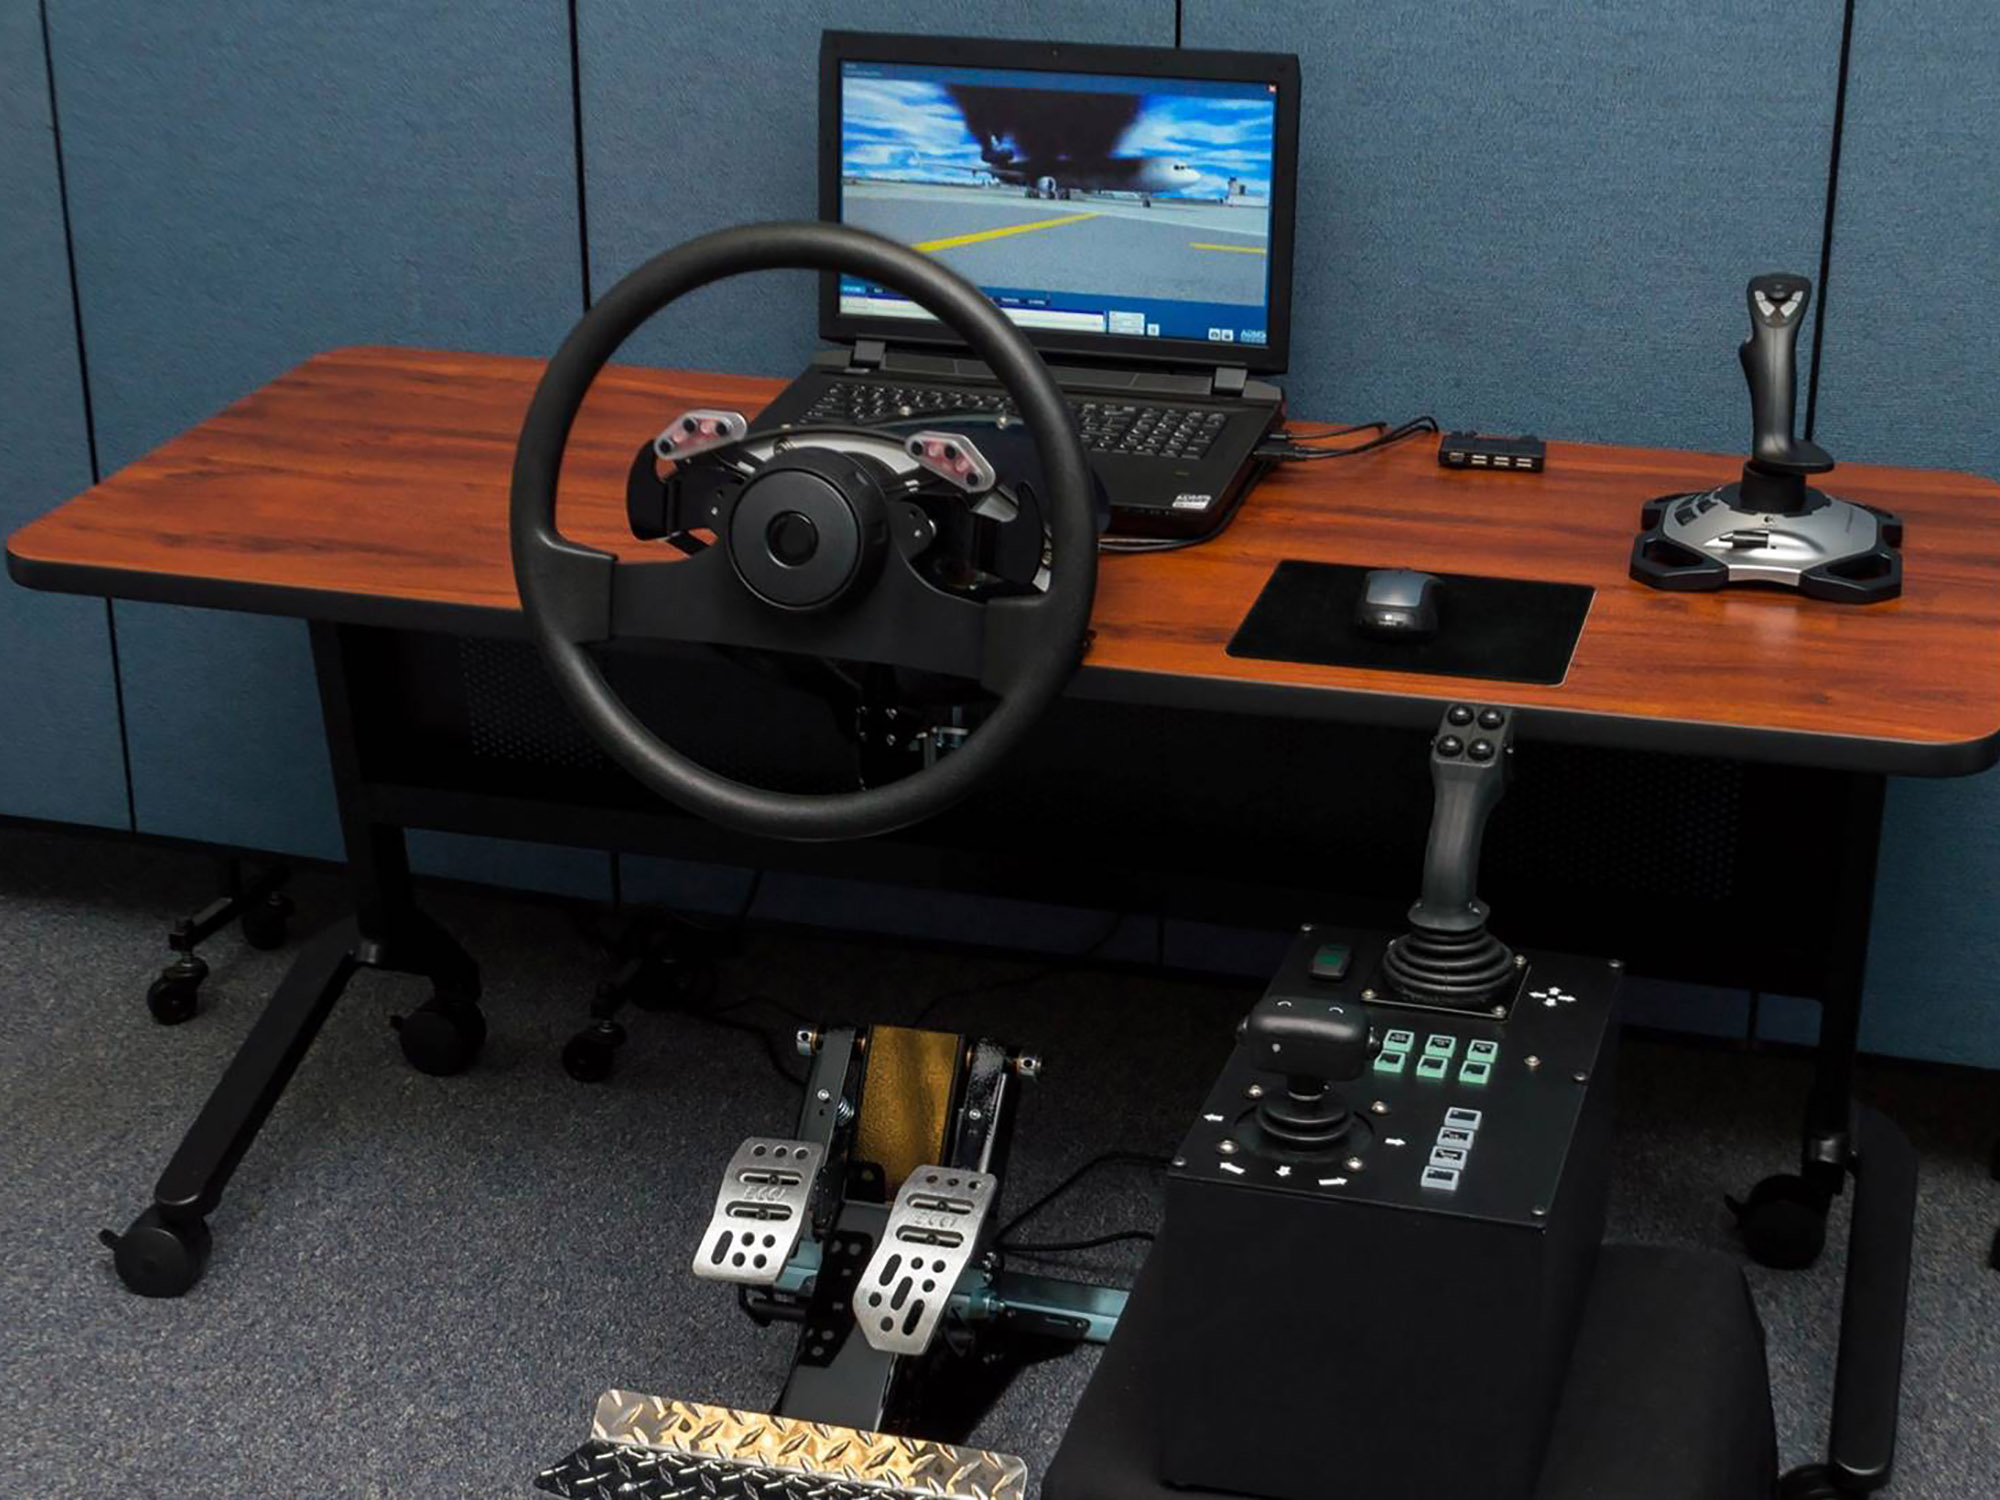 Desktop ARFF and Airport Drive Trainer consists of a generic steering wheel and controls packed in transportation cases.